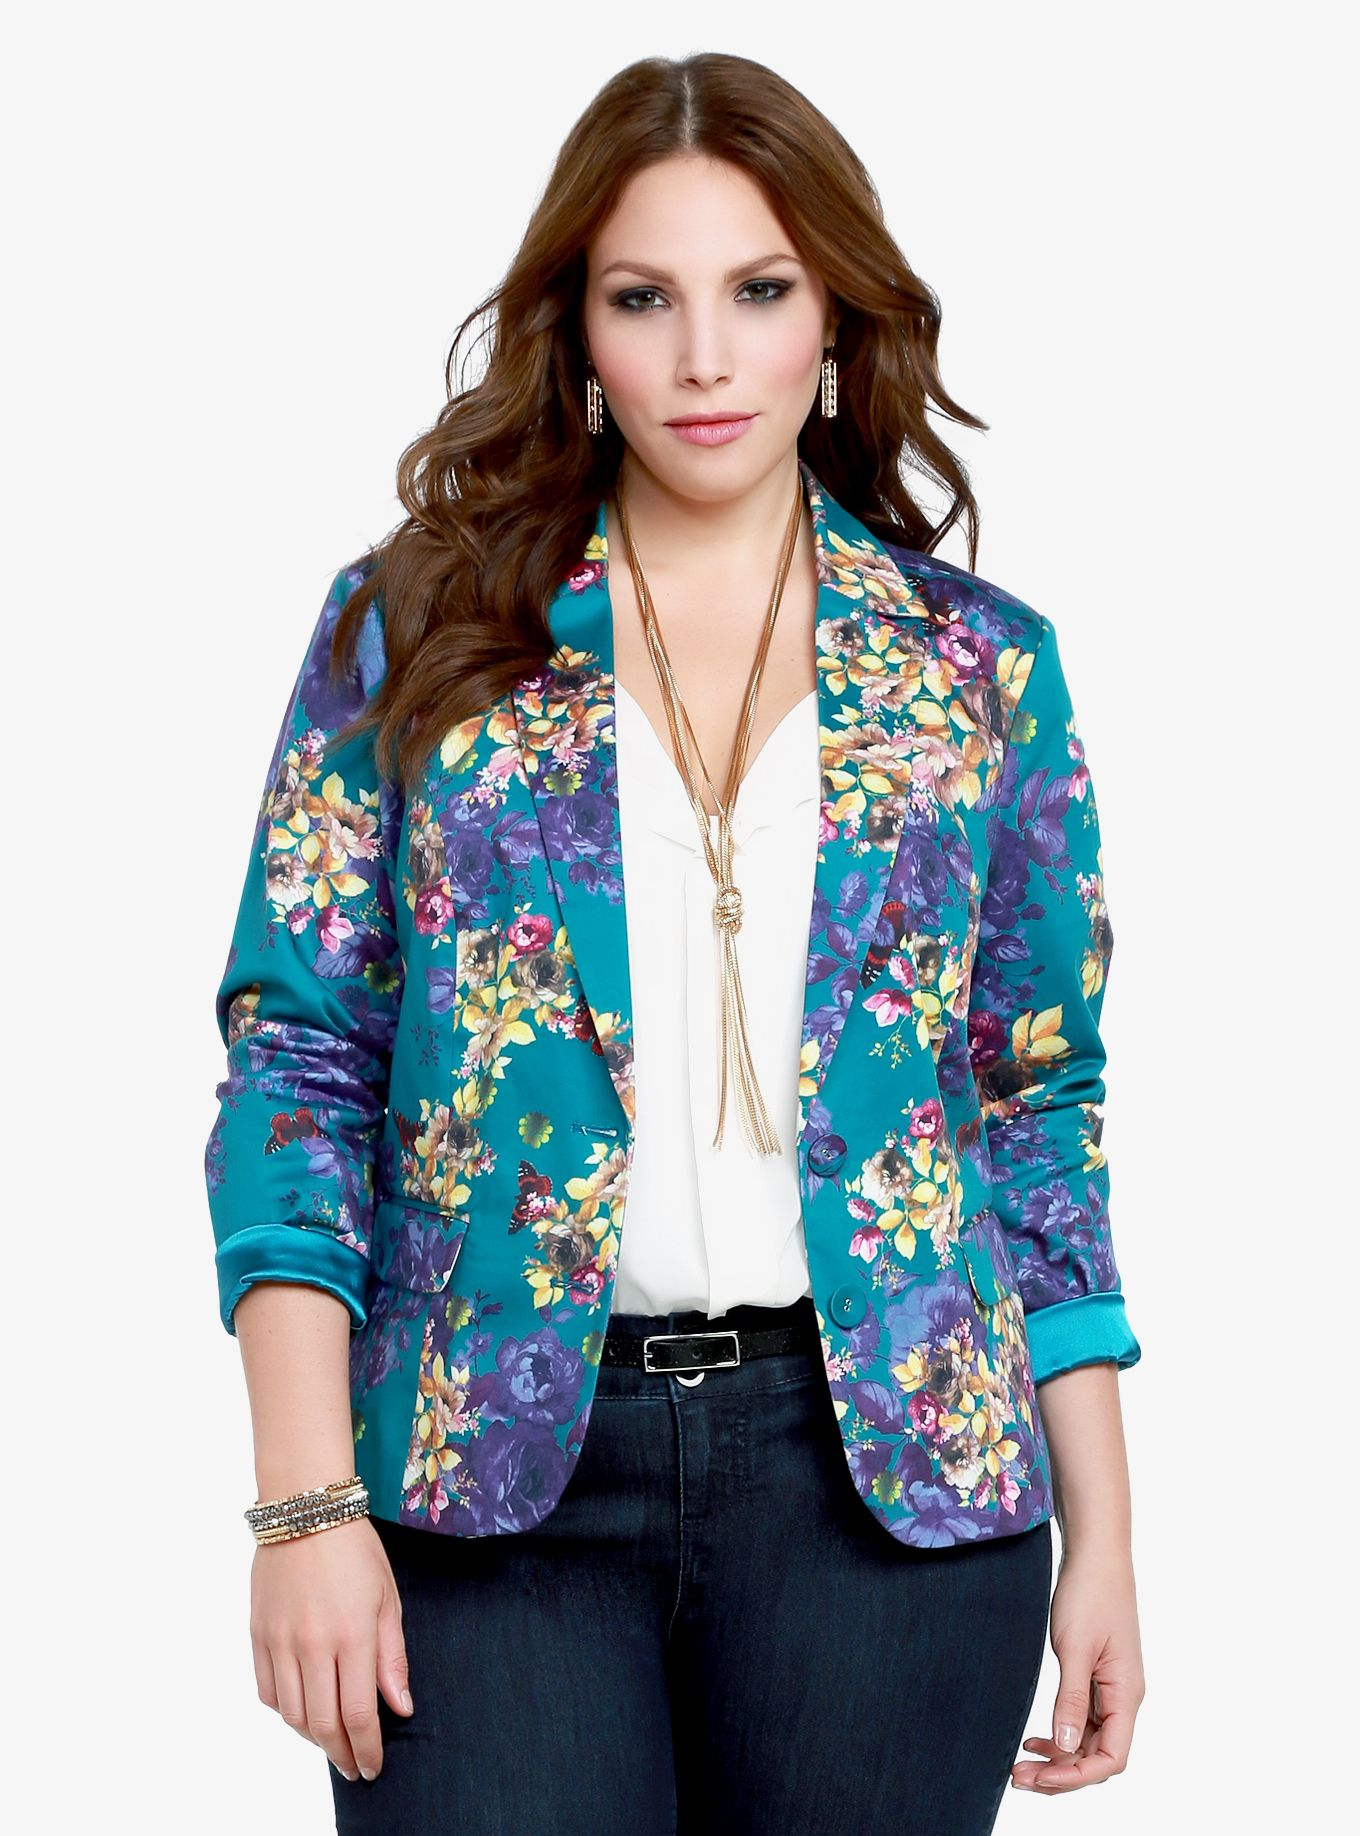 Discover great deals on women's blazers at zulily. Get the perfect blazer for work or going out from your favorite brand. Save up to 70% off today!